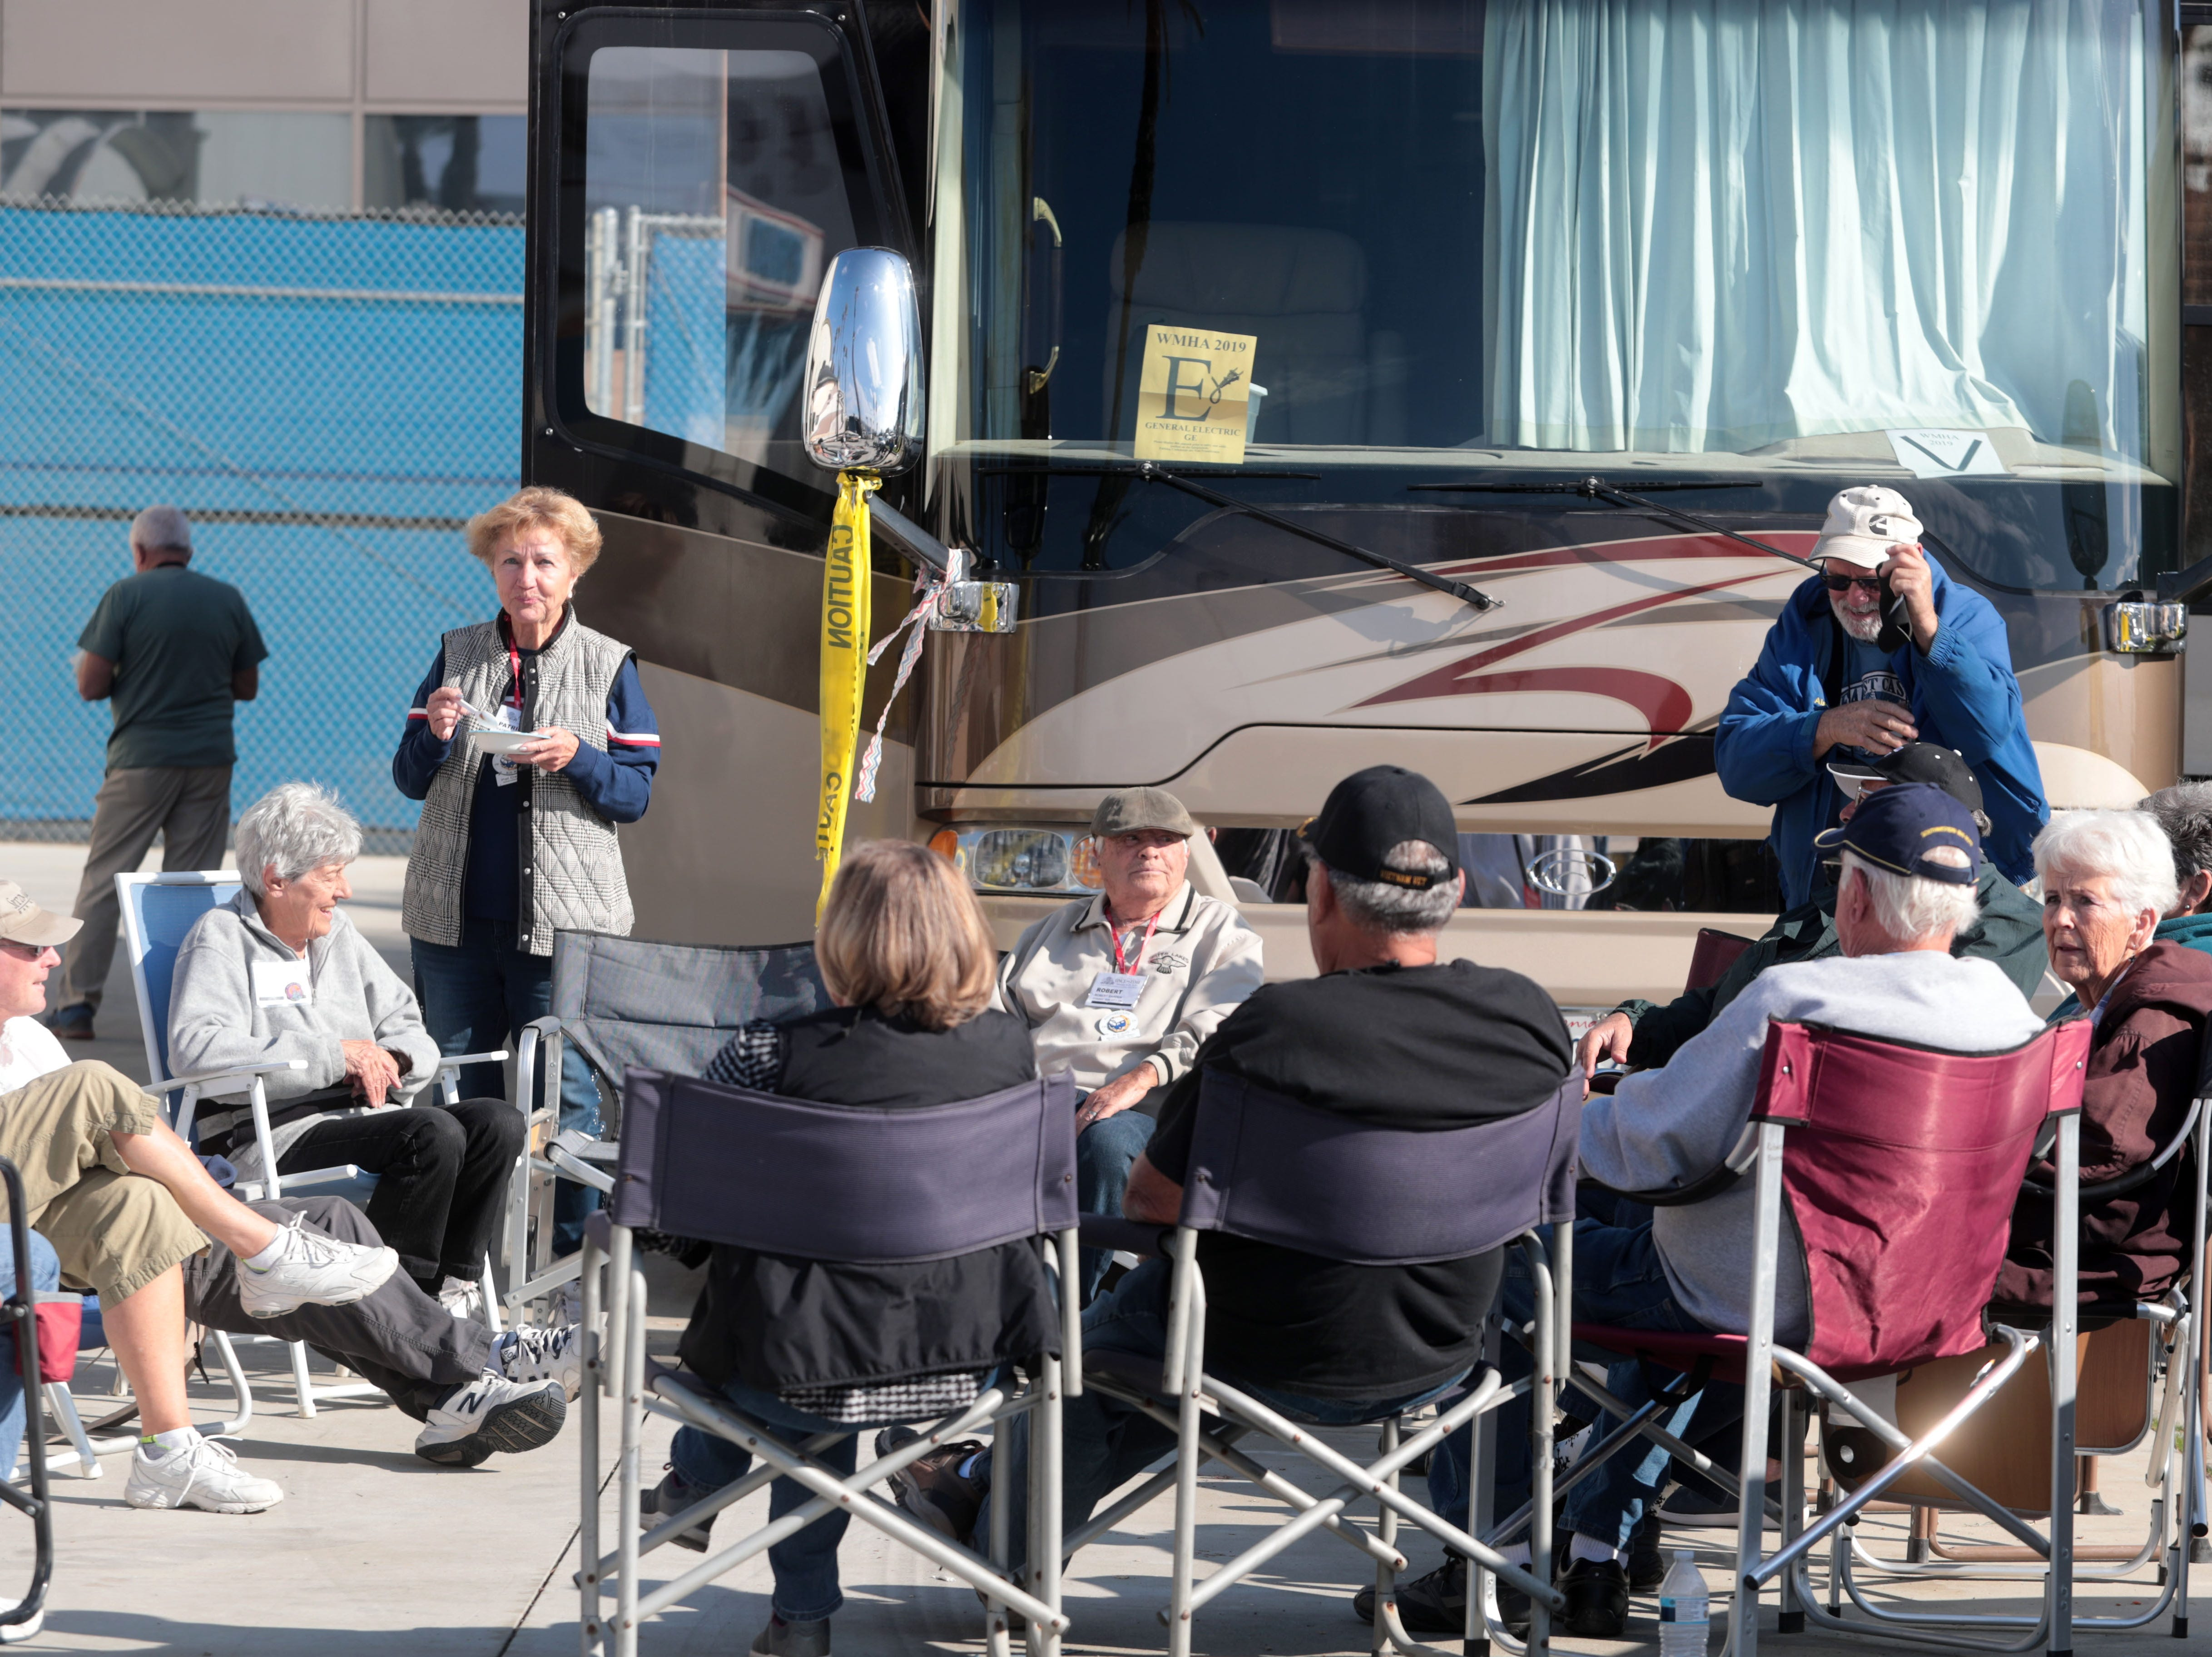 RV owners in a circle at the Riverside County Fairground in Indio on Saturday, January 12, 2019, during the FMCA annual motorhome convention.